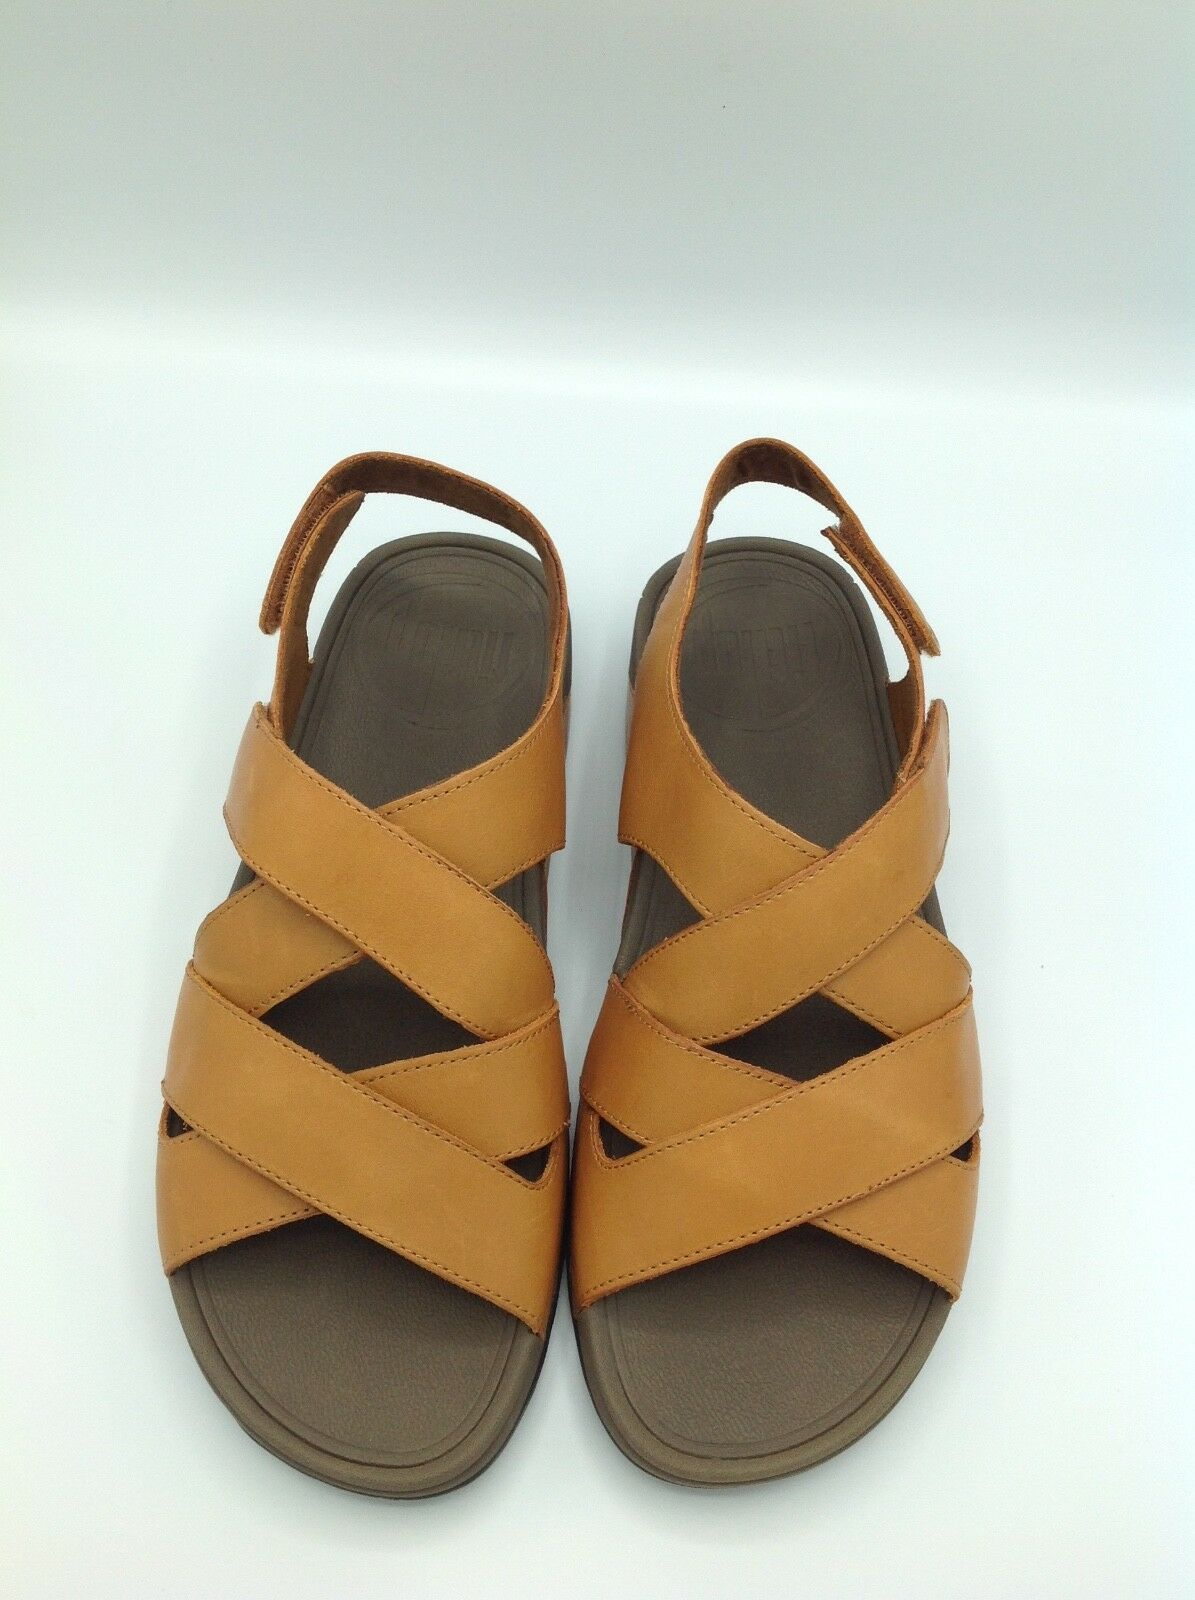 Brand New Men FitFlop NEXX Sandals Leather Camel US Size 12